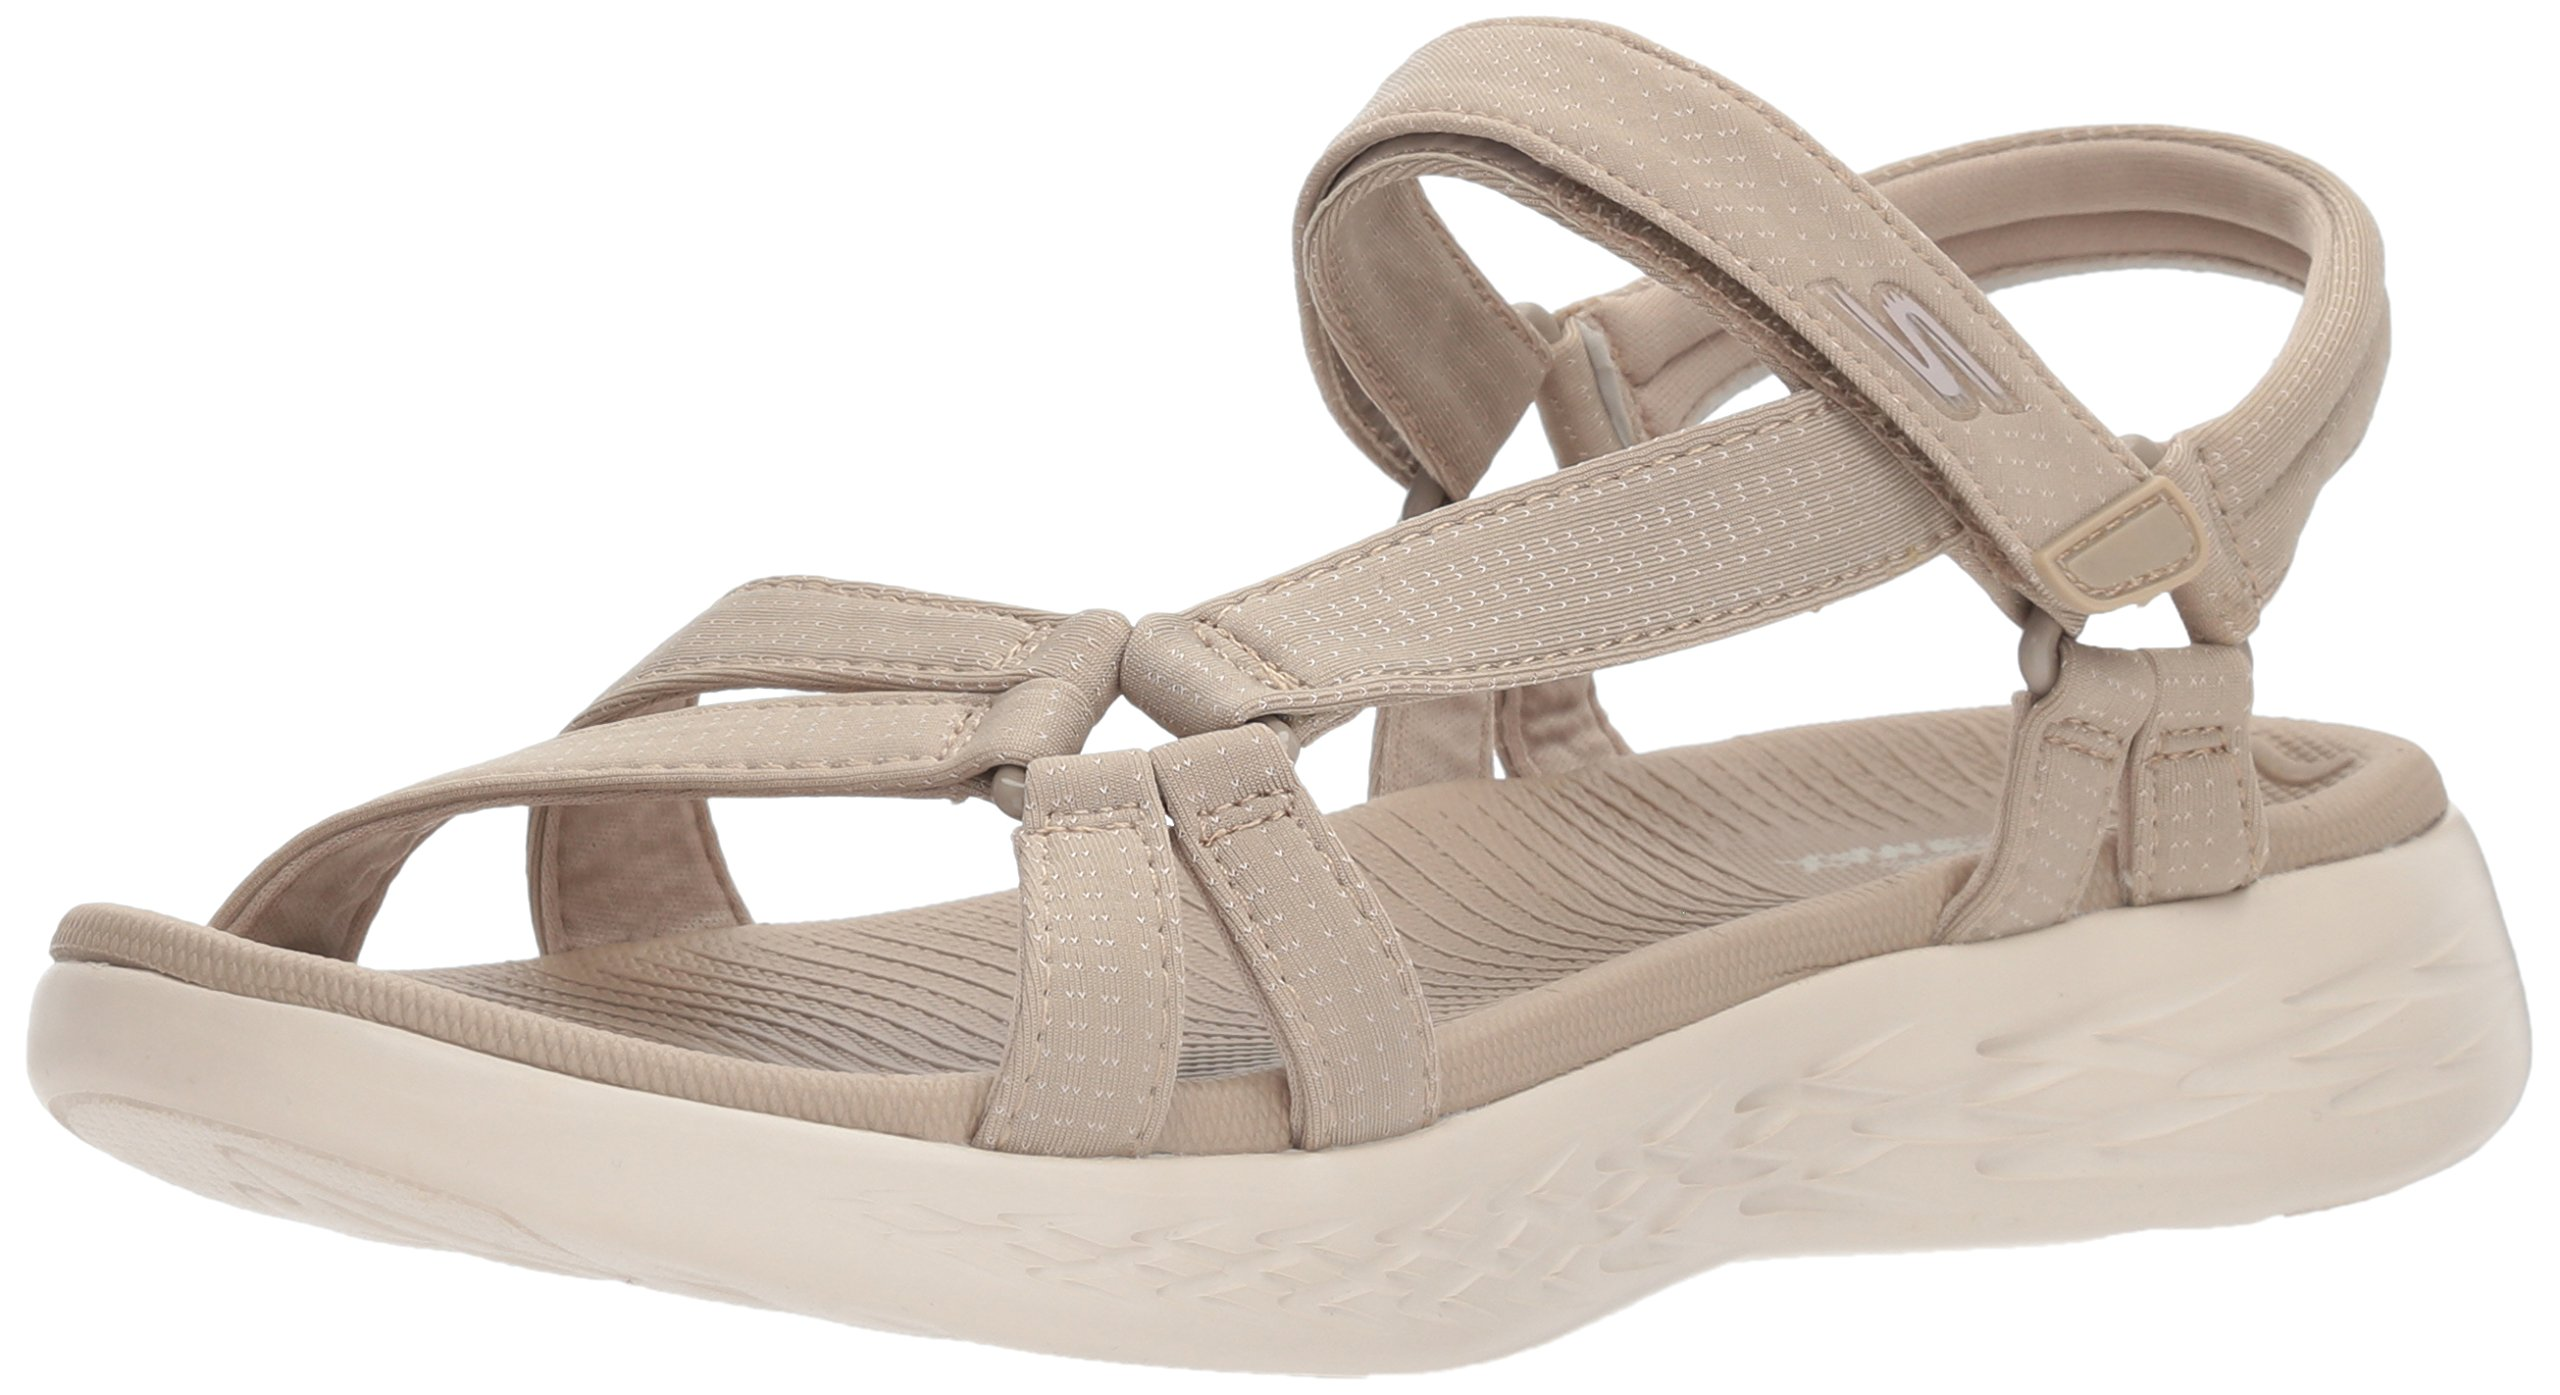 Skechers Performance Women's on-The-Go 600-Brilliancy Wide Sport Sandal, Natural, 7 W US